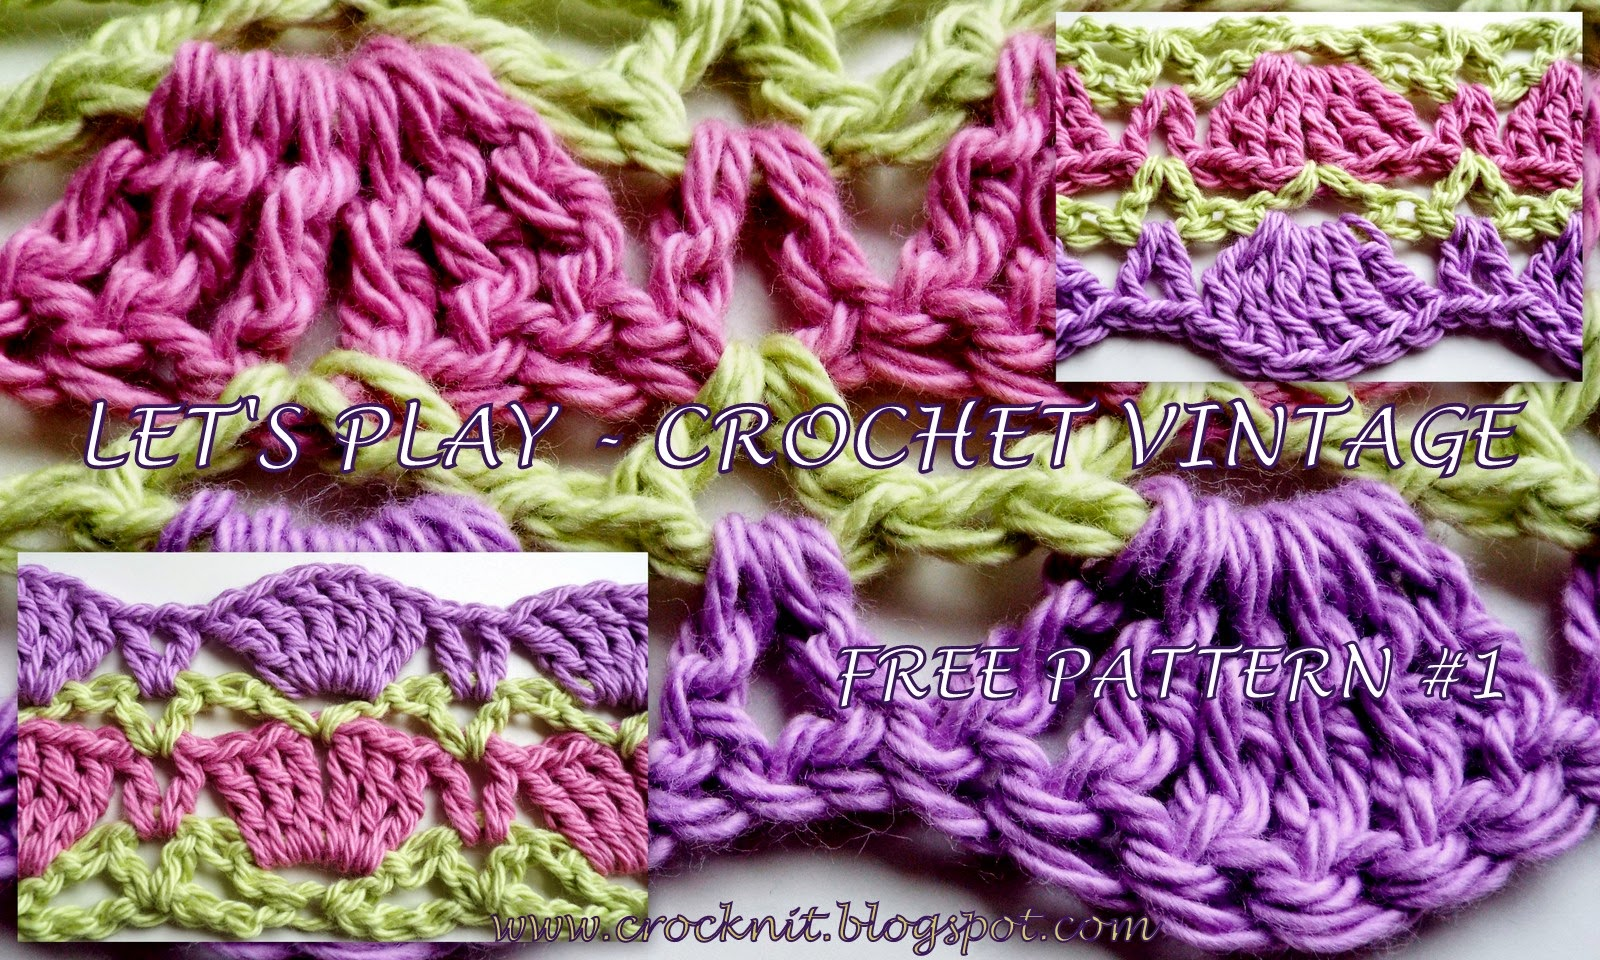 Crochet Stitch Rtrf : MICROCKNIT CREATIONS: LETS PLAY - CROCHET VINTAGE - FREE PATTERN #1